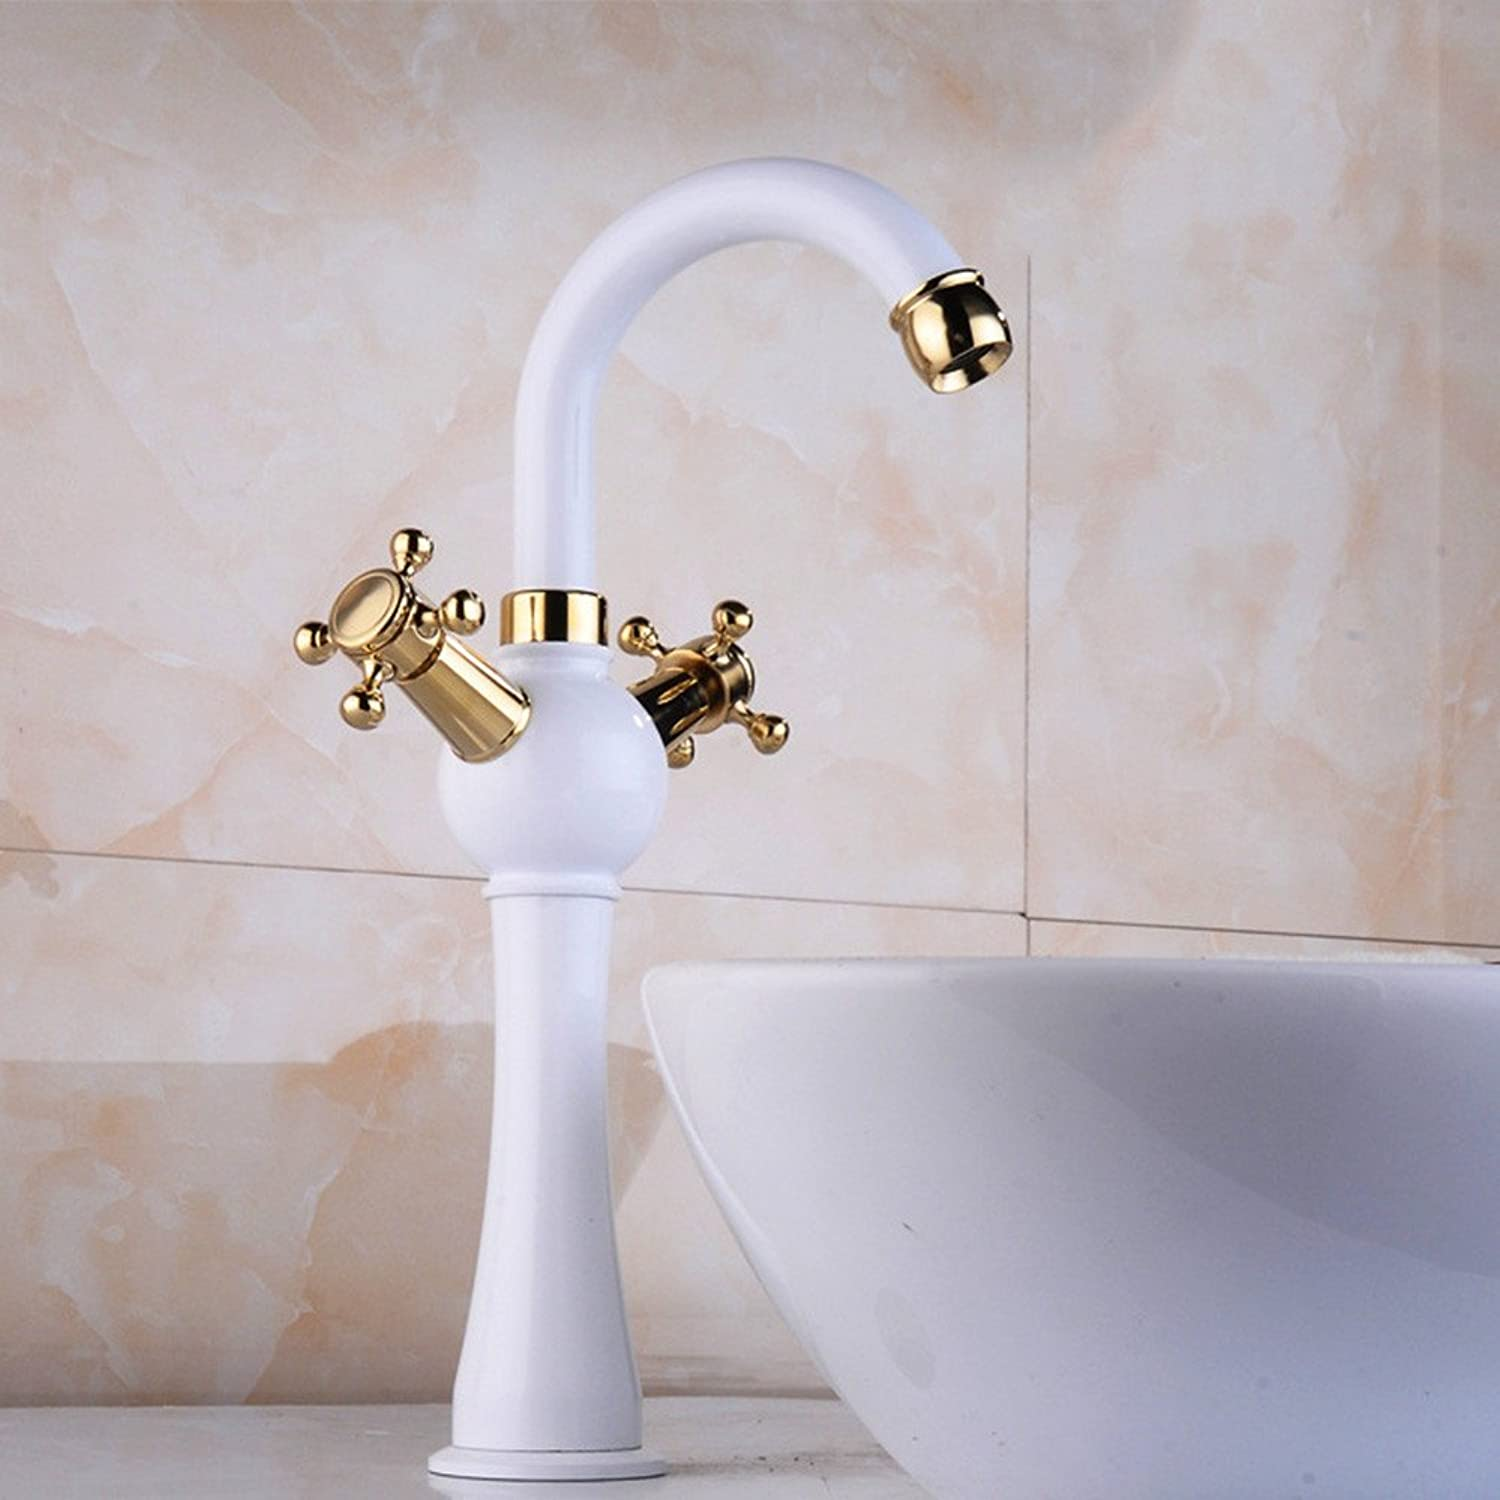 White paint _ countertop art basin leading white paint gold plated faucet